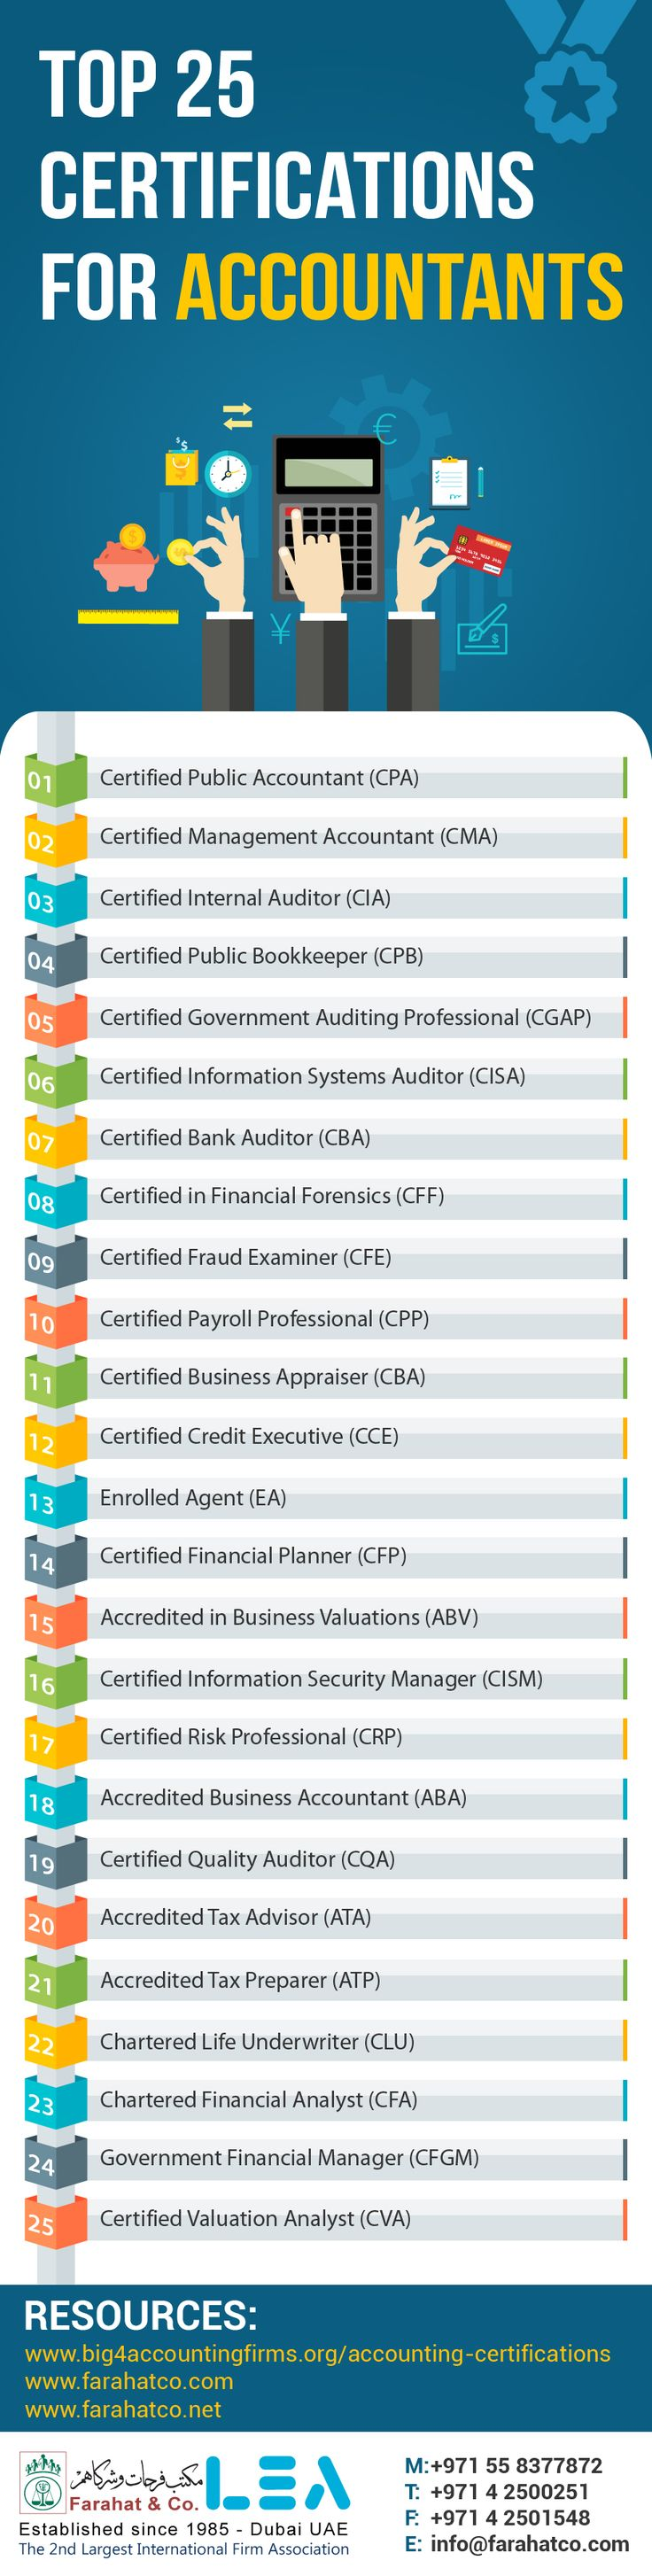 14 best infographics images on pinterest info graphics top 25 certifications for accountants 1betcityfo Choice Image